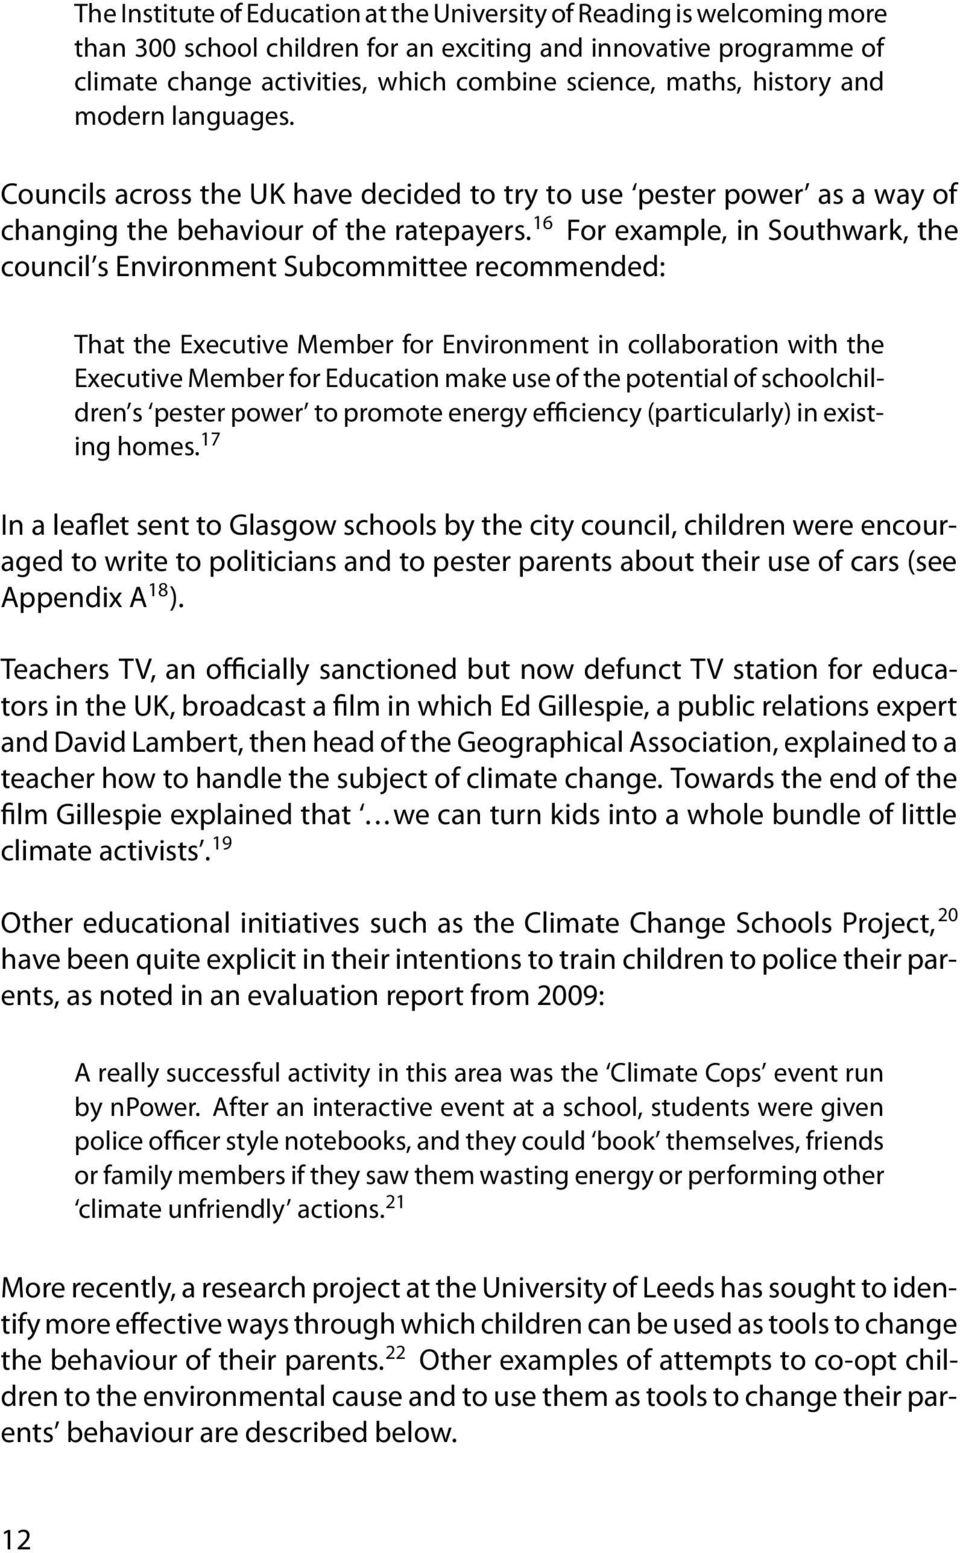 16 For example, in Southwark, the council s Environment Subcommittee recommended: That the Executive Member for Environment in collaboration with the Executive Member for Education make use of the